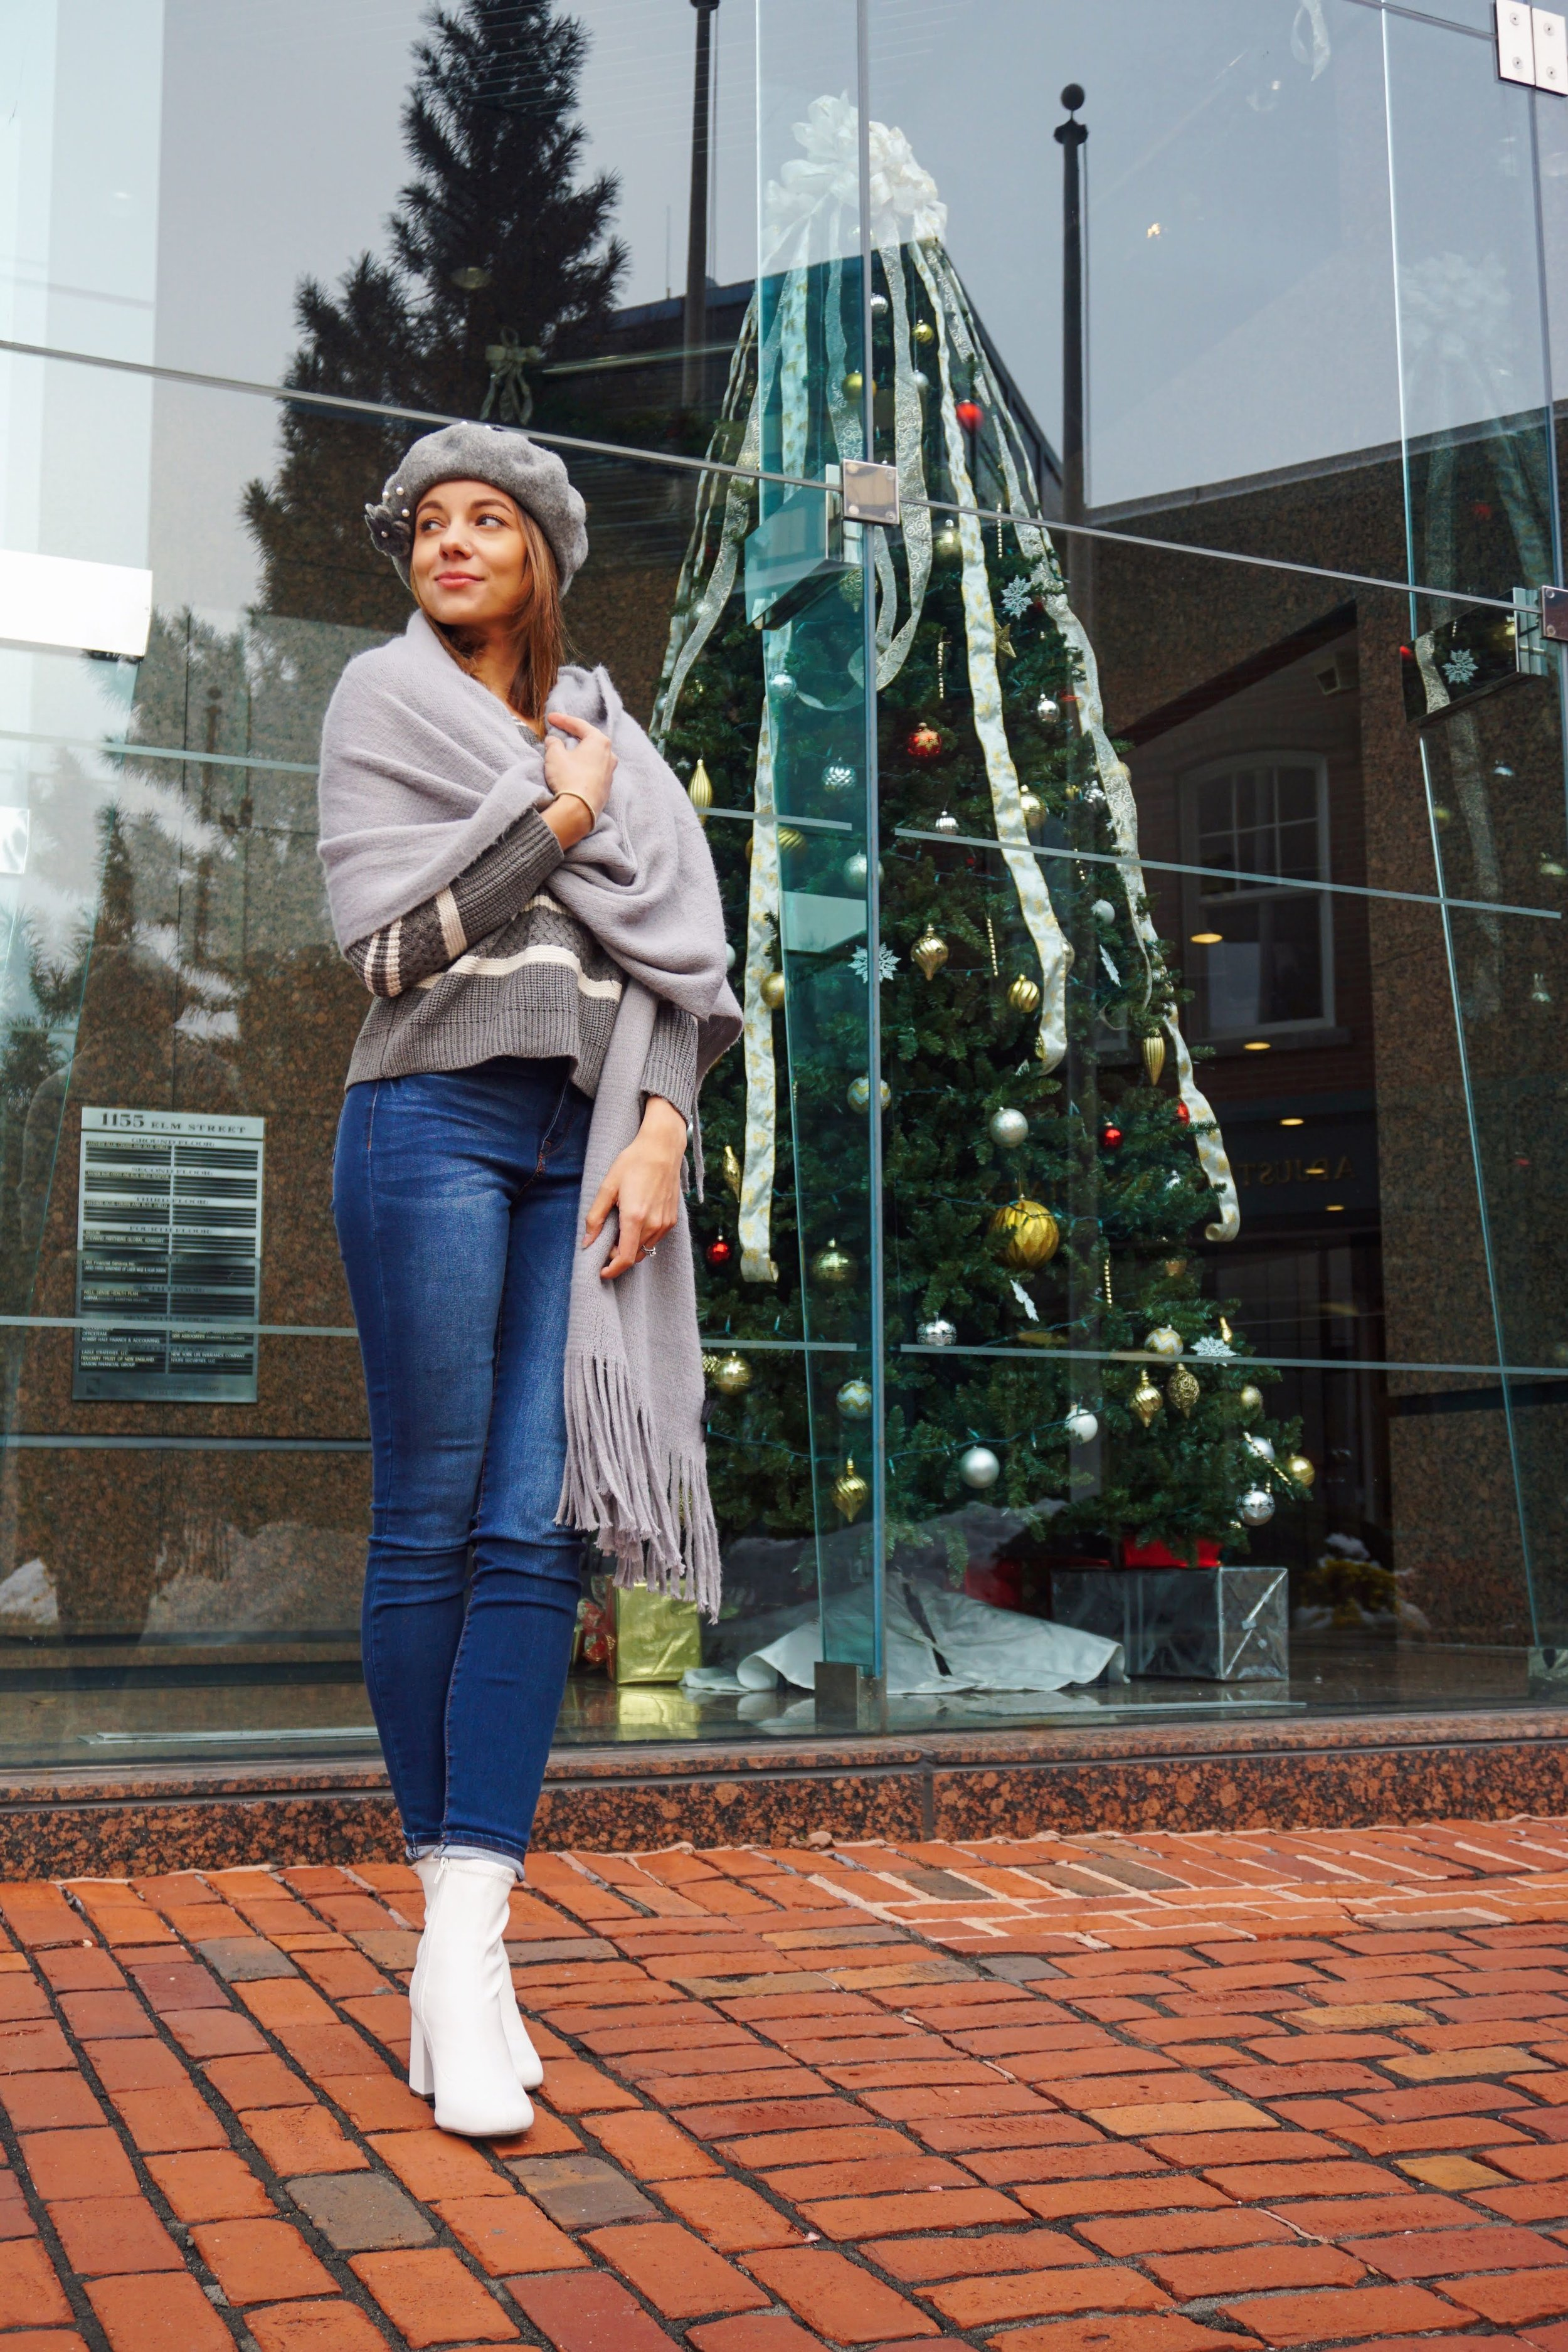 A photo of a blogger standing in front of a building mirror and Christimas tree.